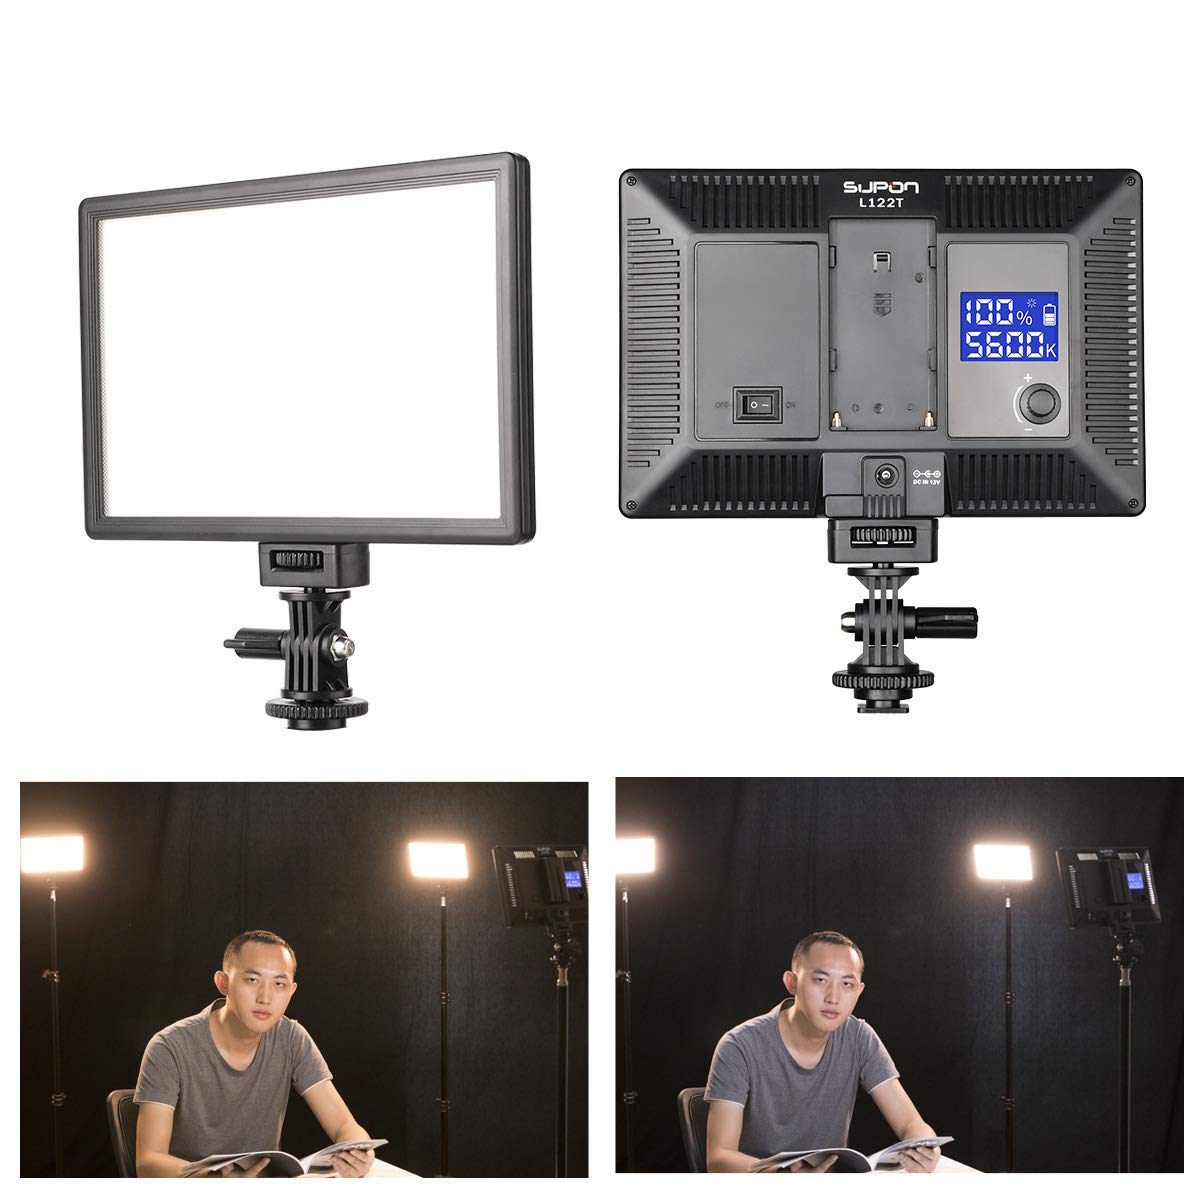 SUPON LED-L122T RA CRI95 Super Slim LCD Display Lighting Panel,Portable Dimmable 3300K-5600K LED Video Light Compatible for Canon,Nikon,Pentax,Sony,Olympus Cameras&Camcorder,Shooting+NP-F550 Battery by SUPON (Image #6)